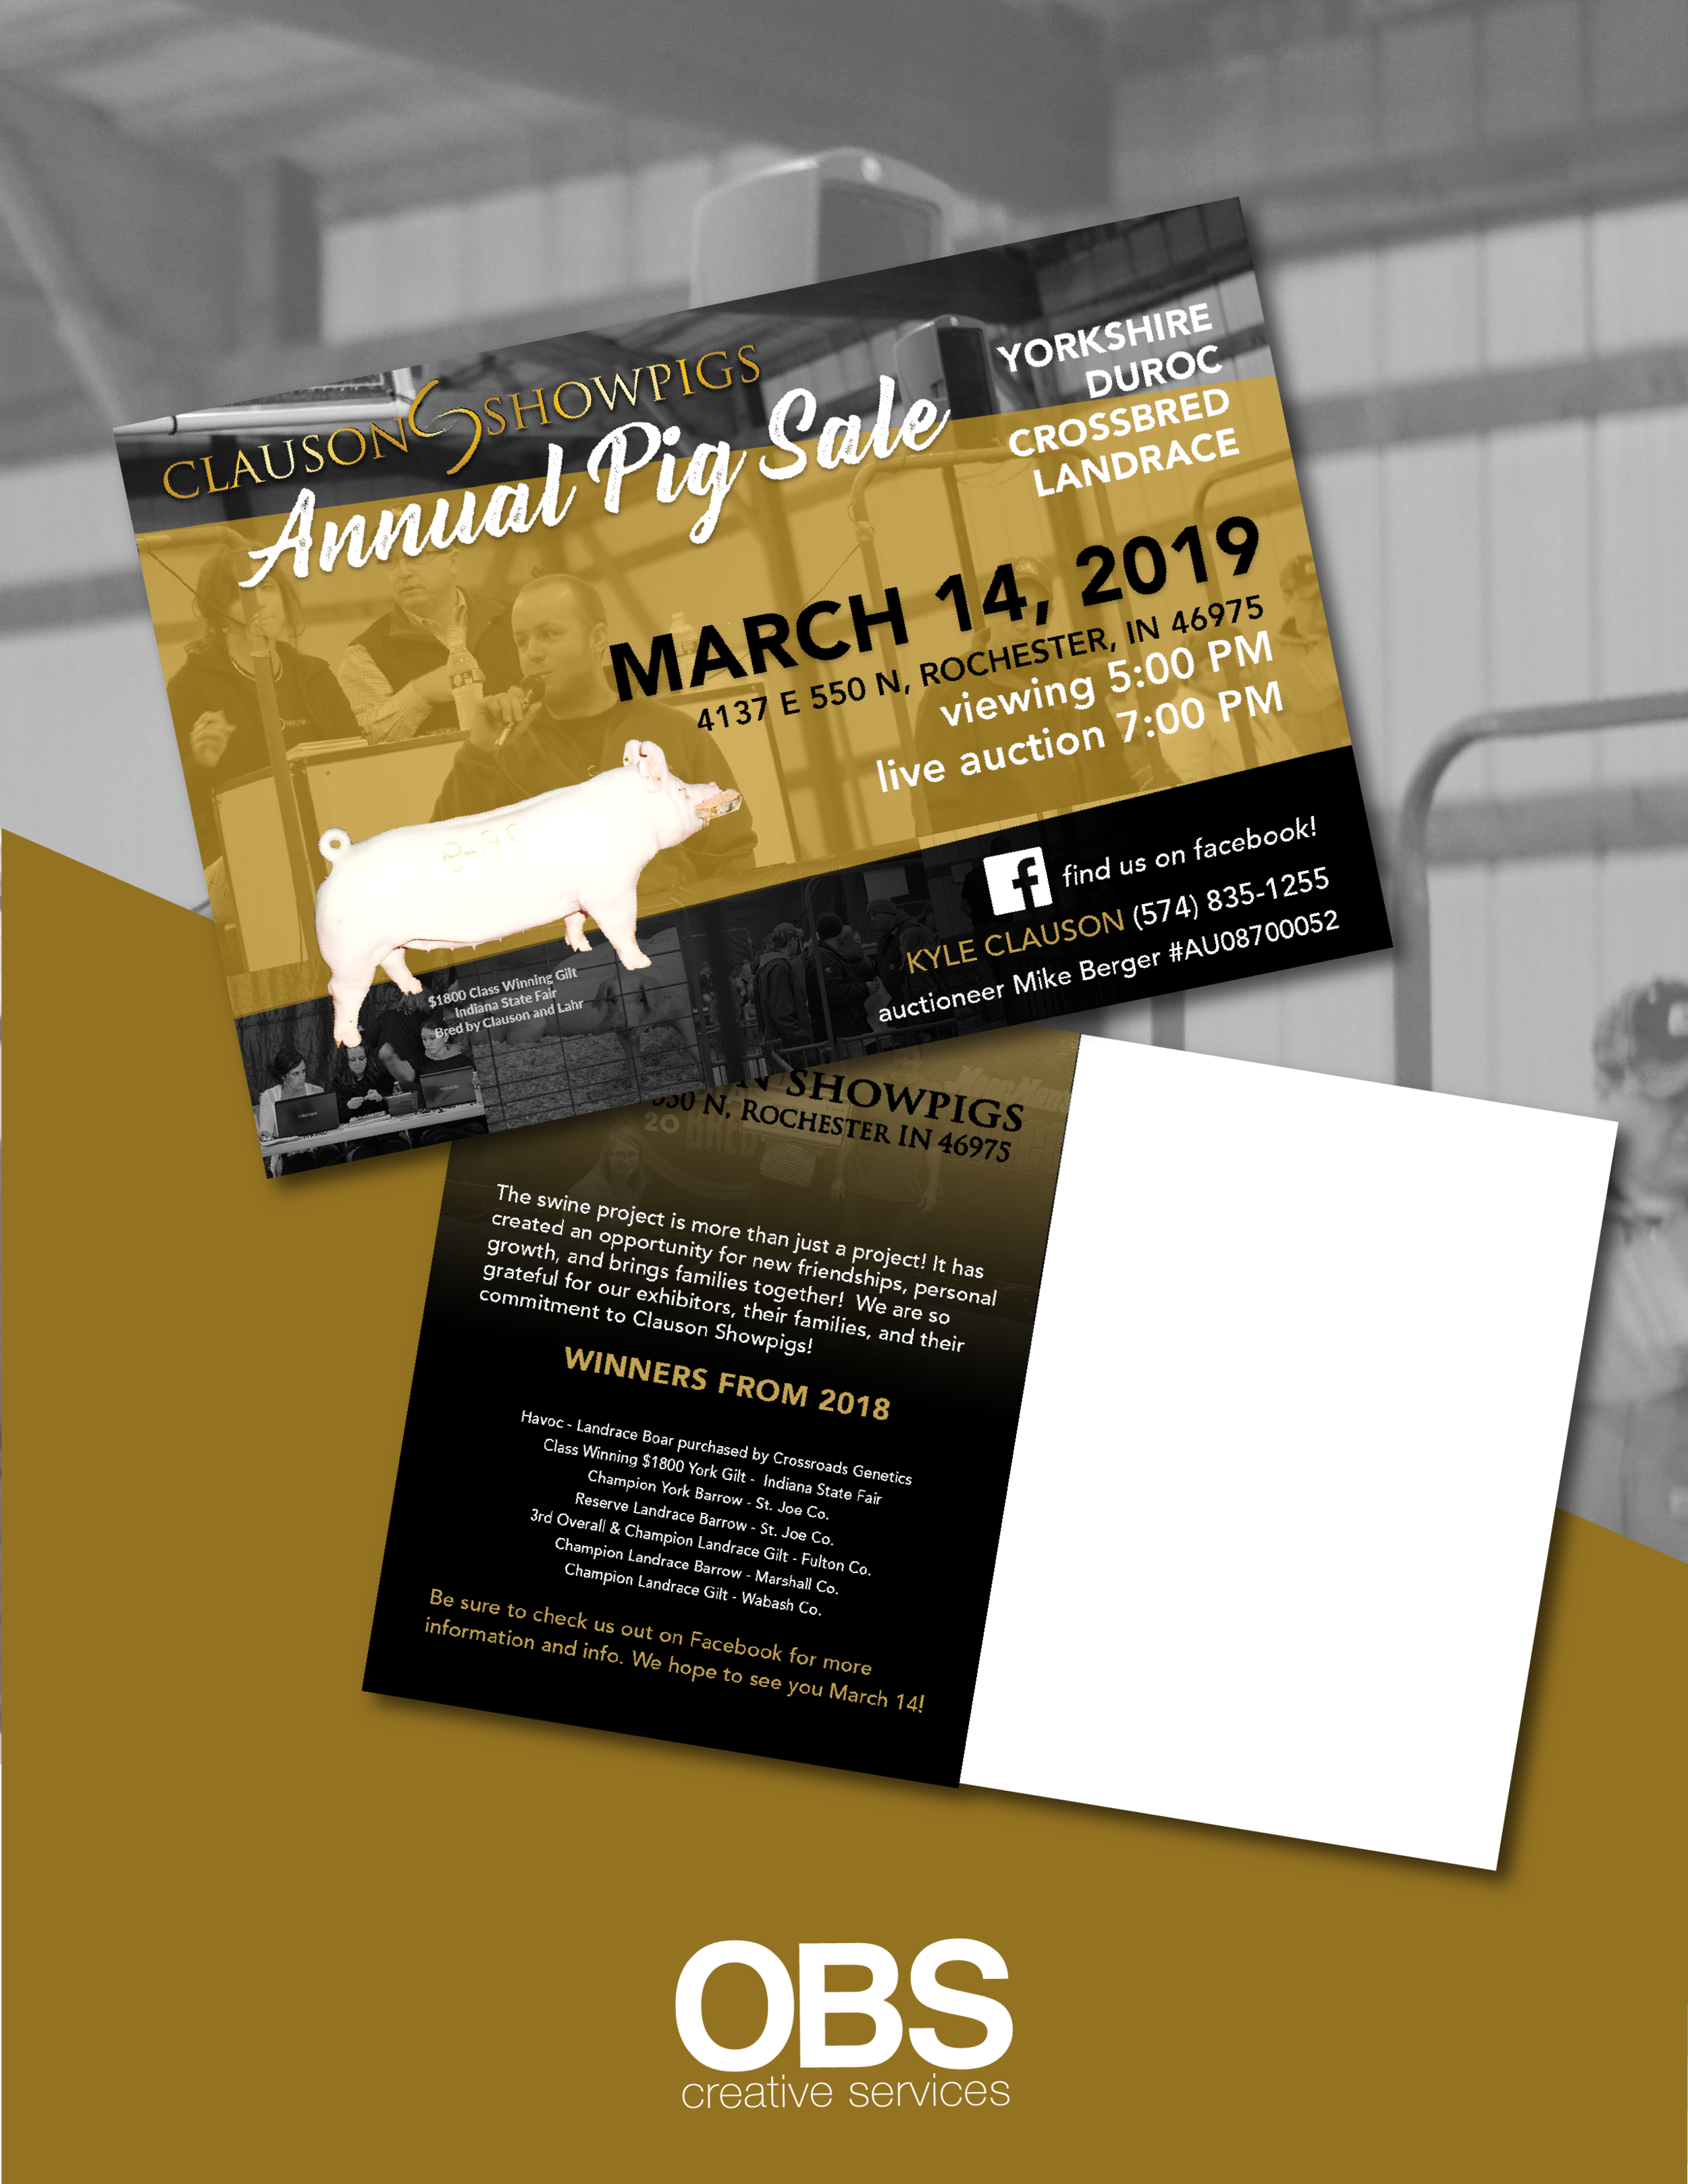 Postcard 2019Clauson Showpigs.png